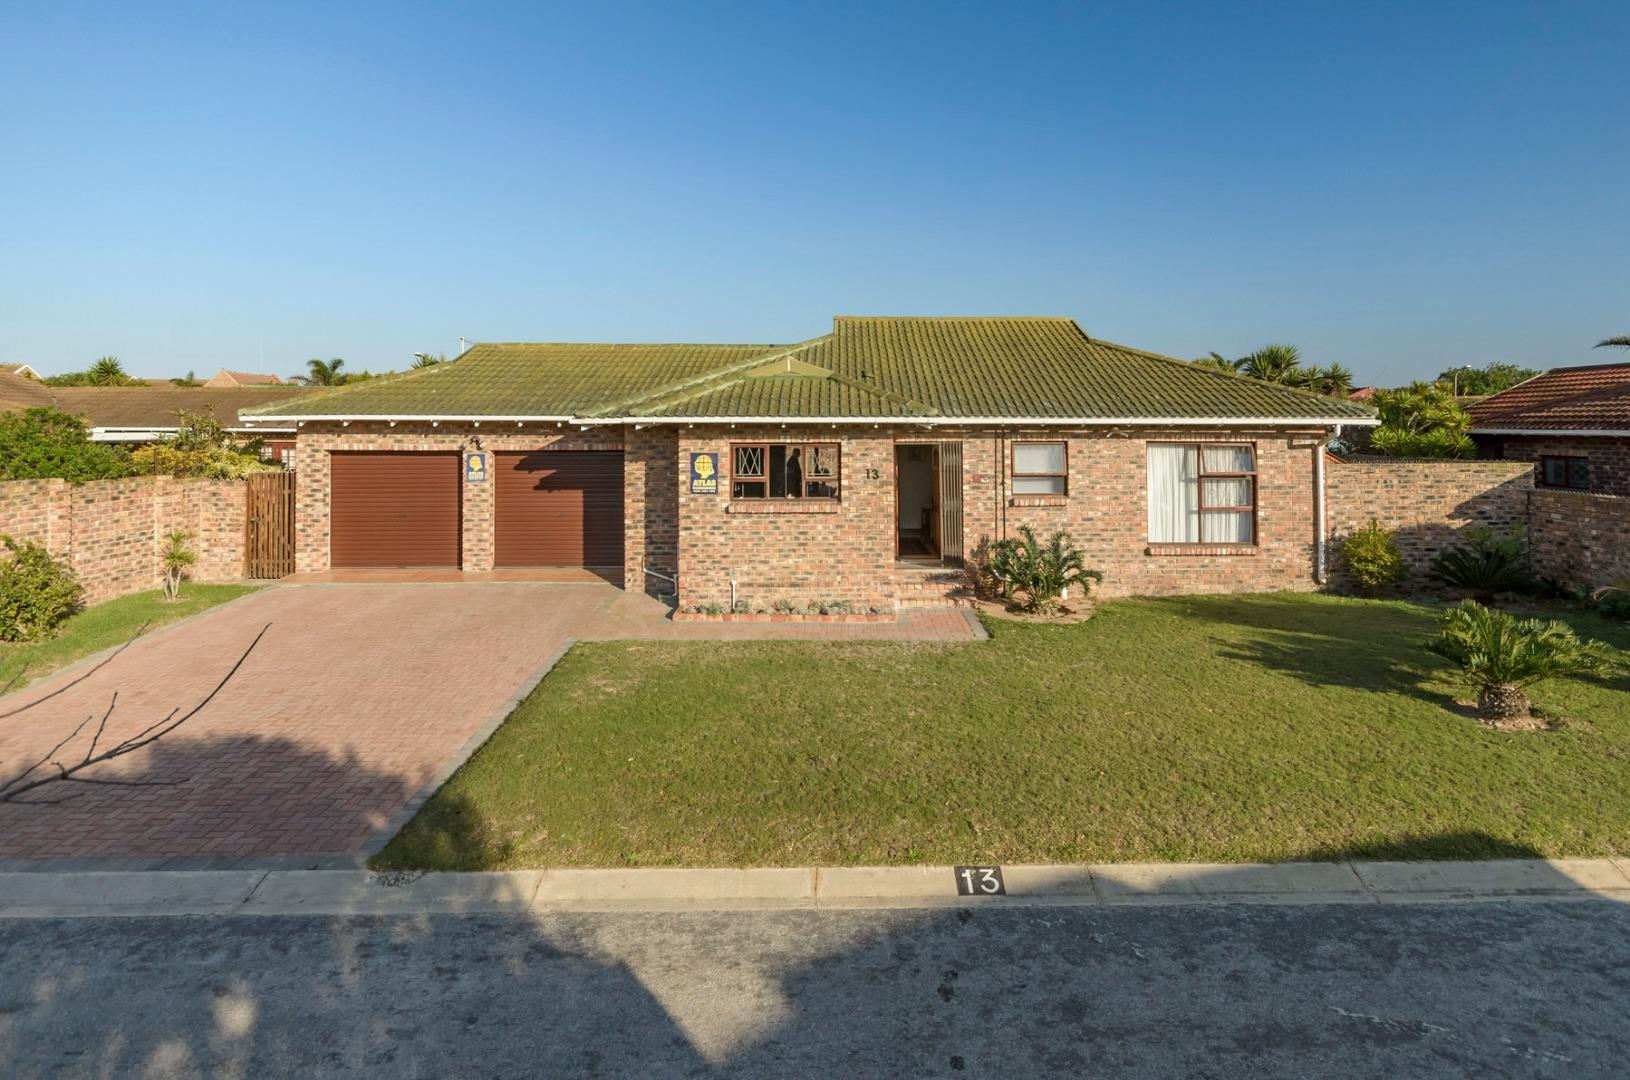 3 Bedroom  House for Sale in Port Elizabeth - Eastern Cape